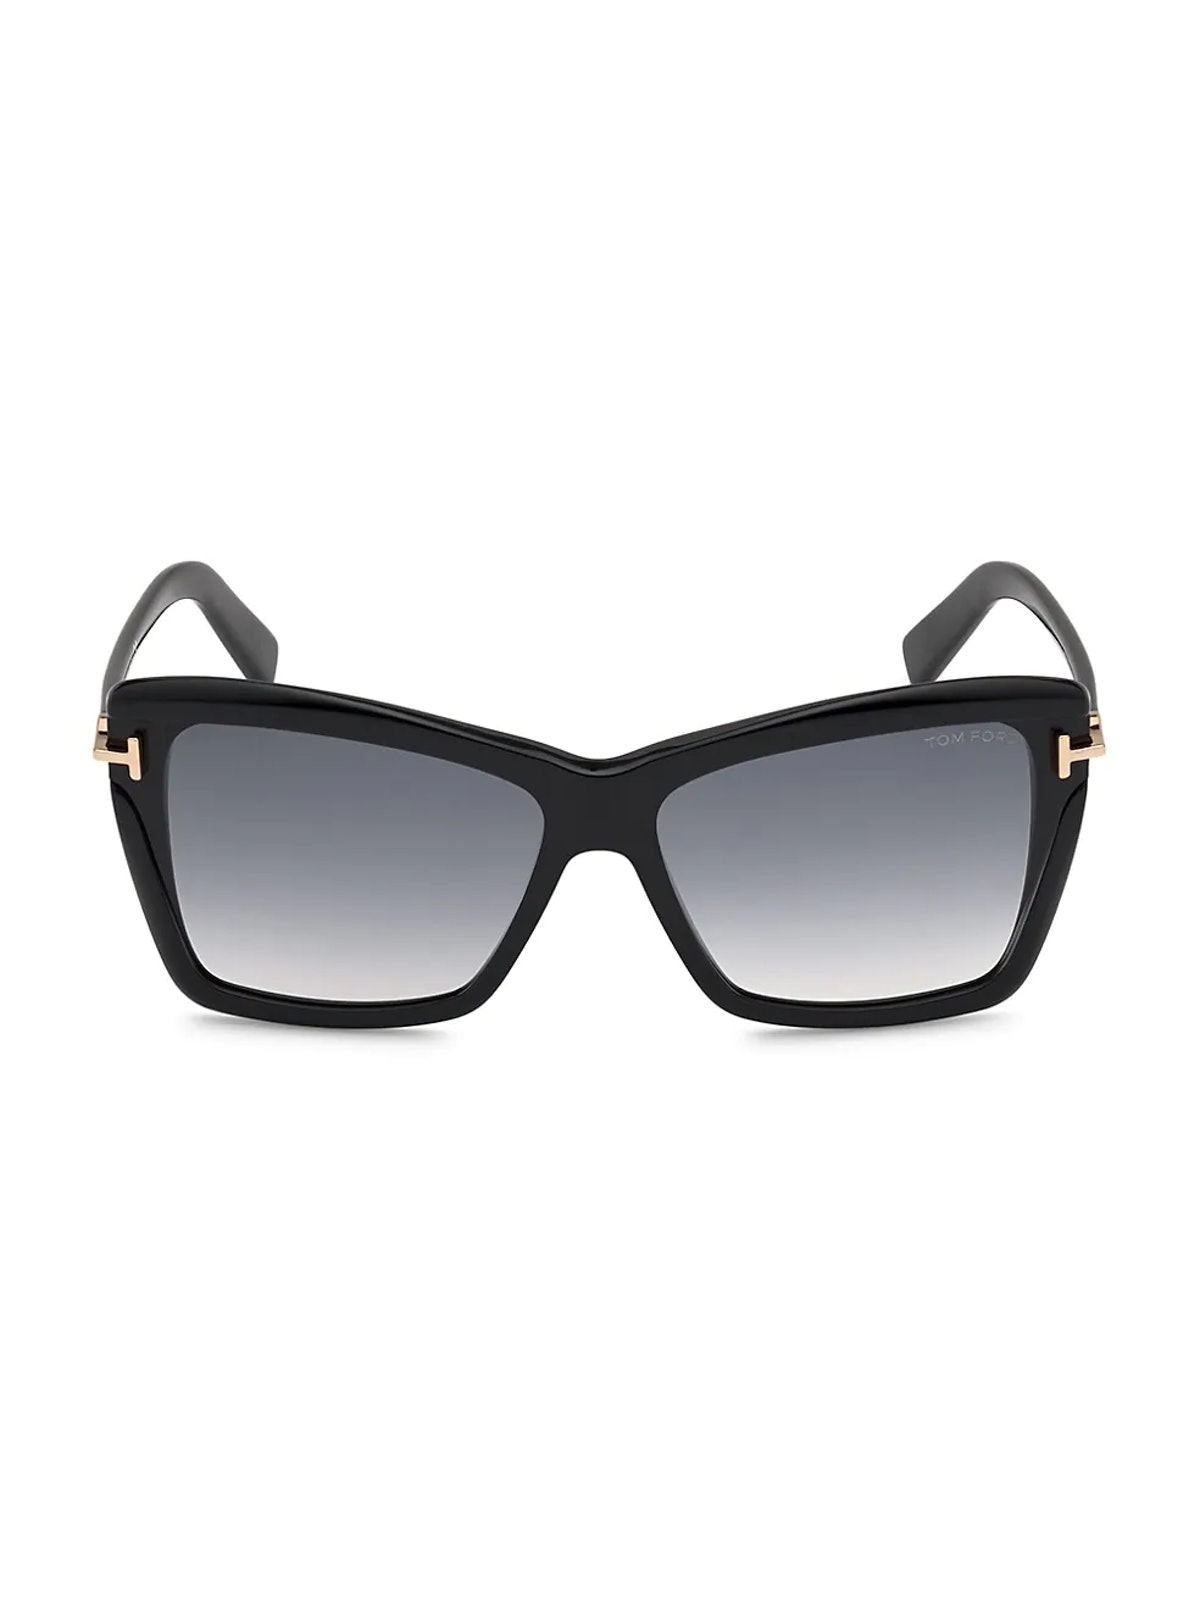 Leah 64MM Butterfly Sunglasses from Tom Ford.